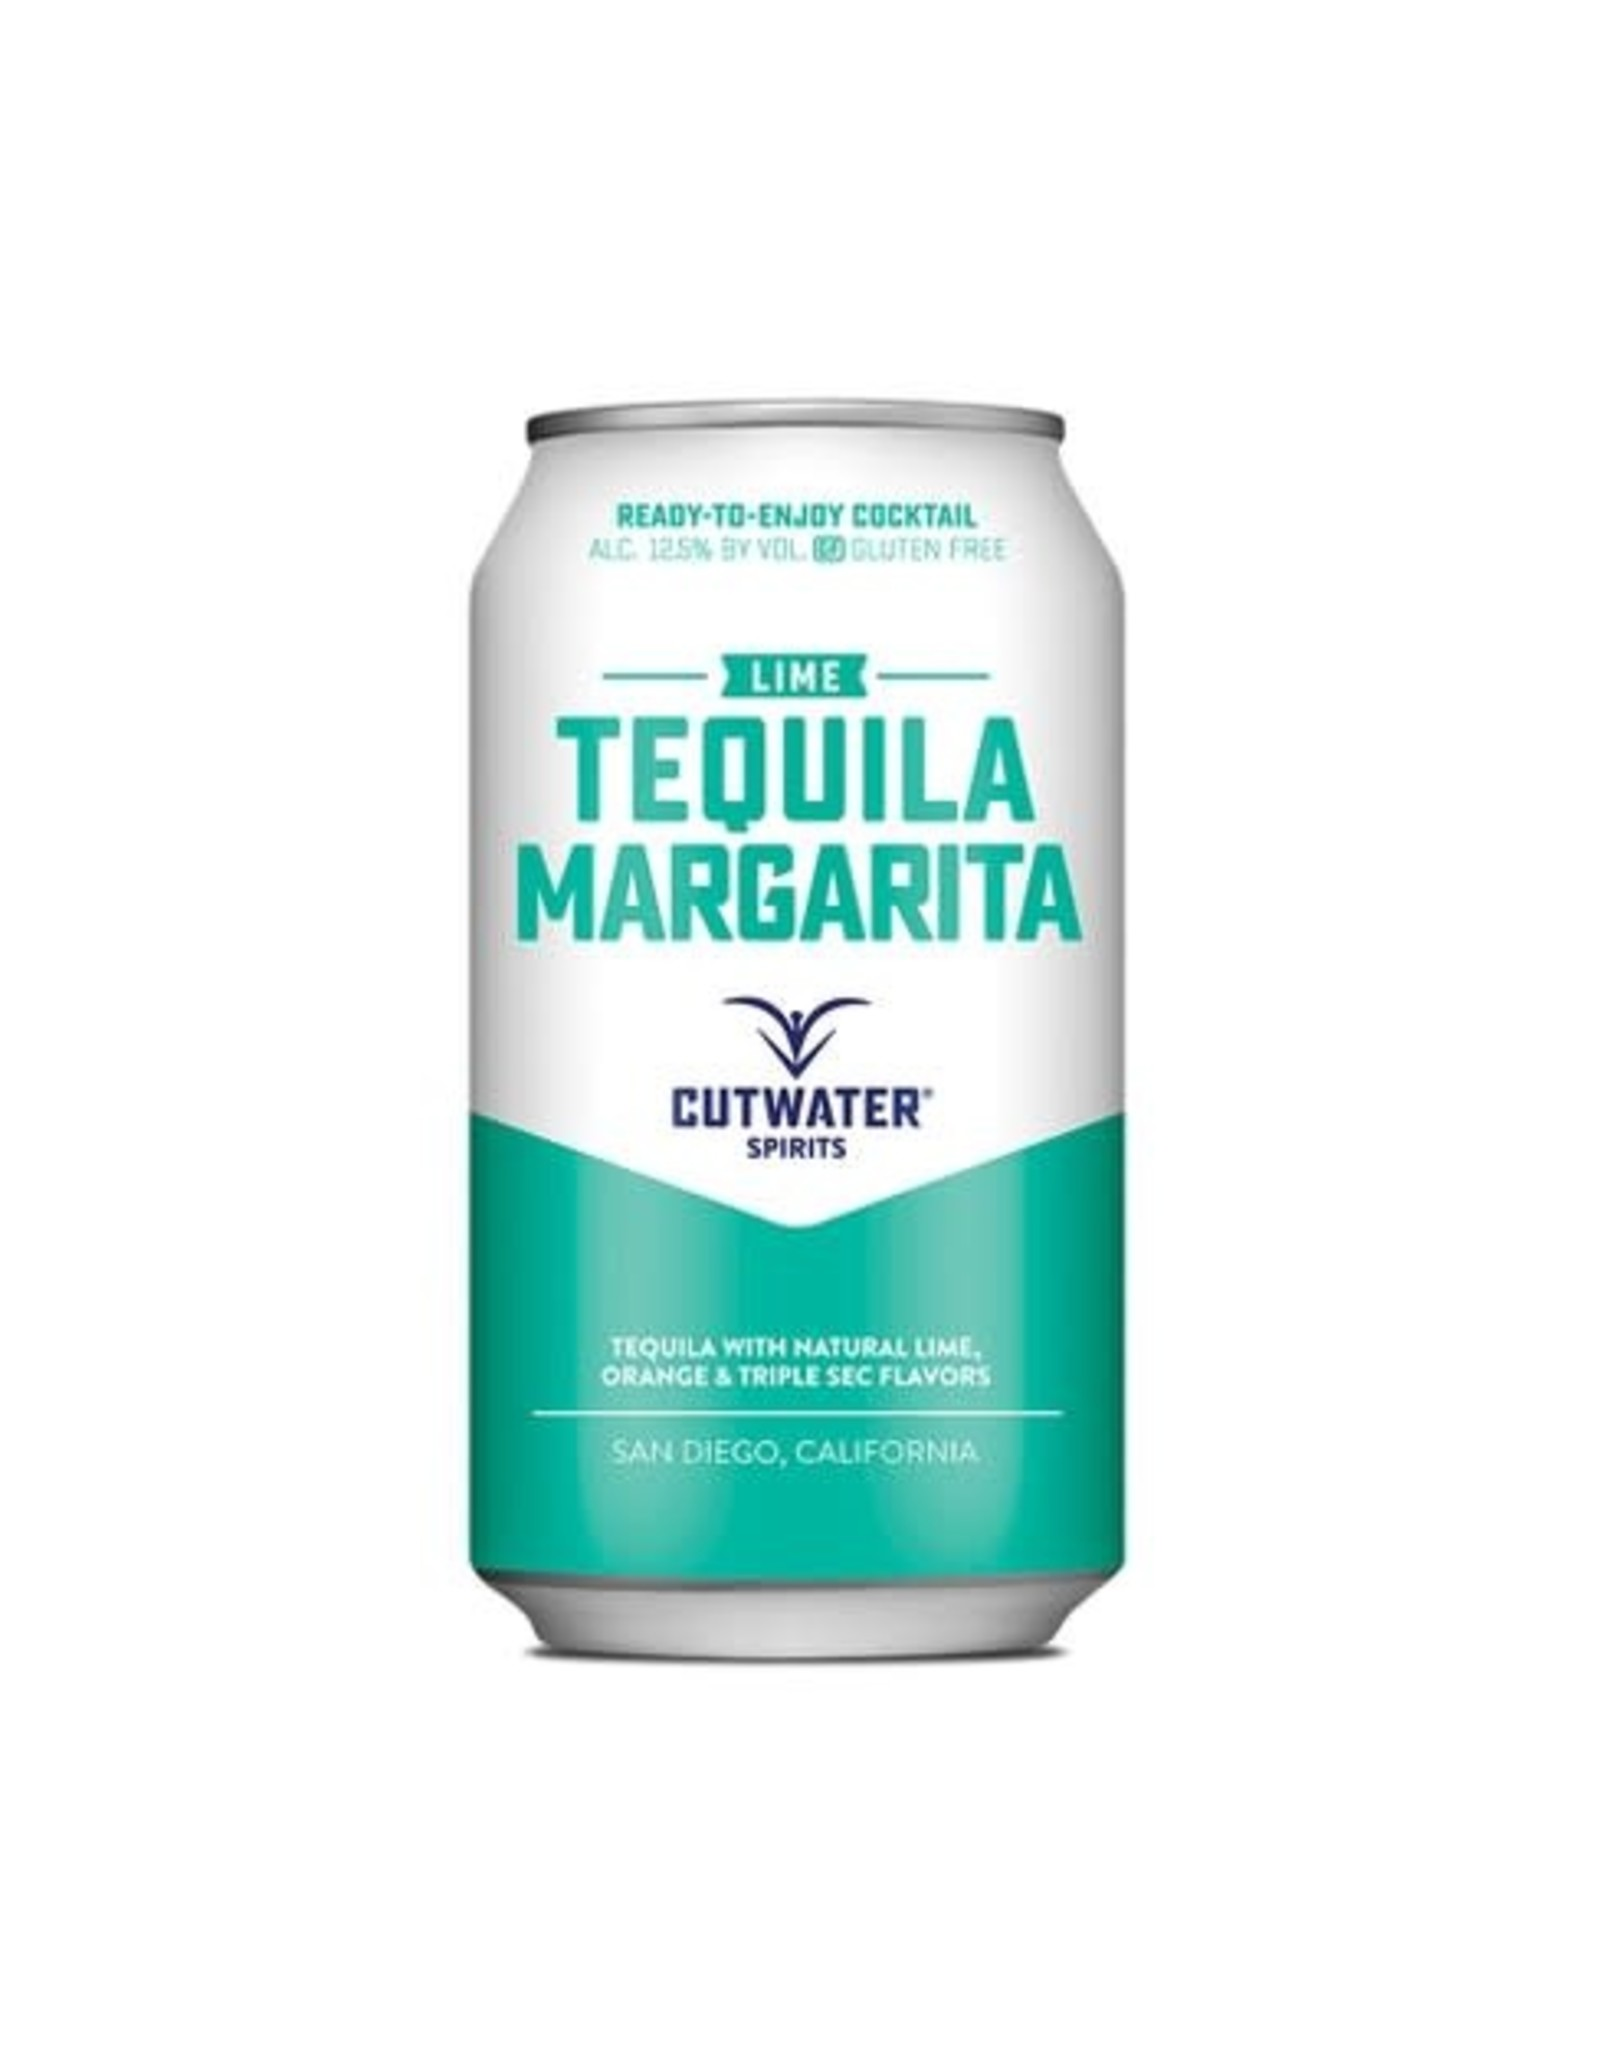 USA Cutwater Tequila Margarita Lime 355ml